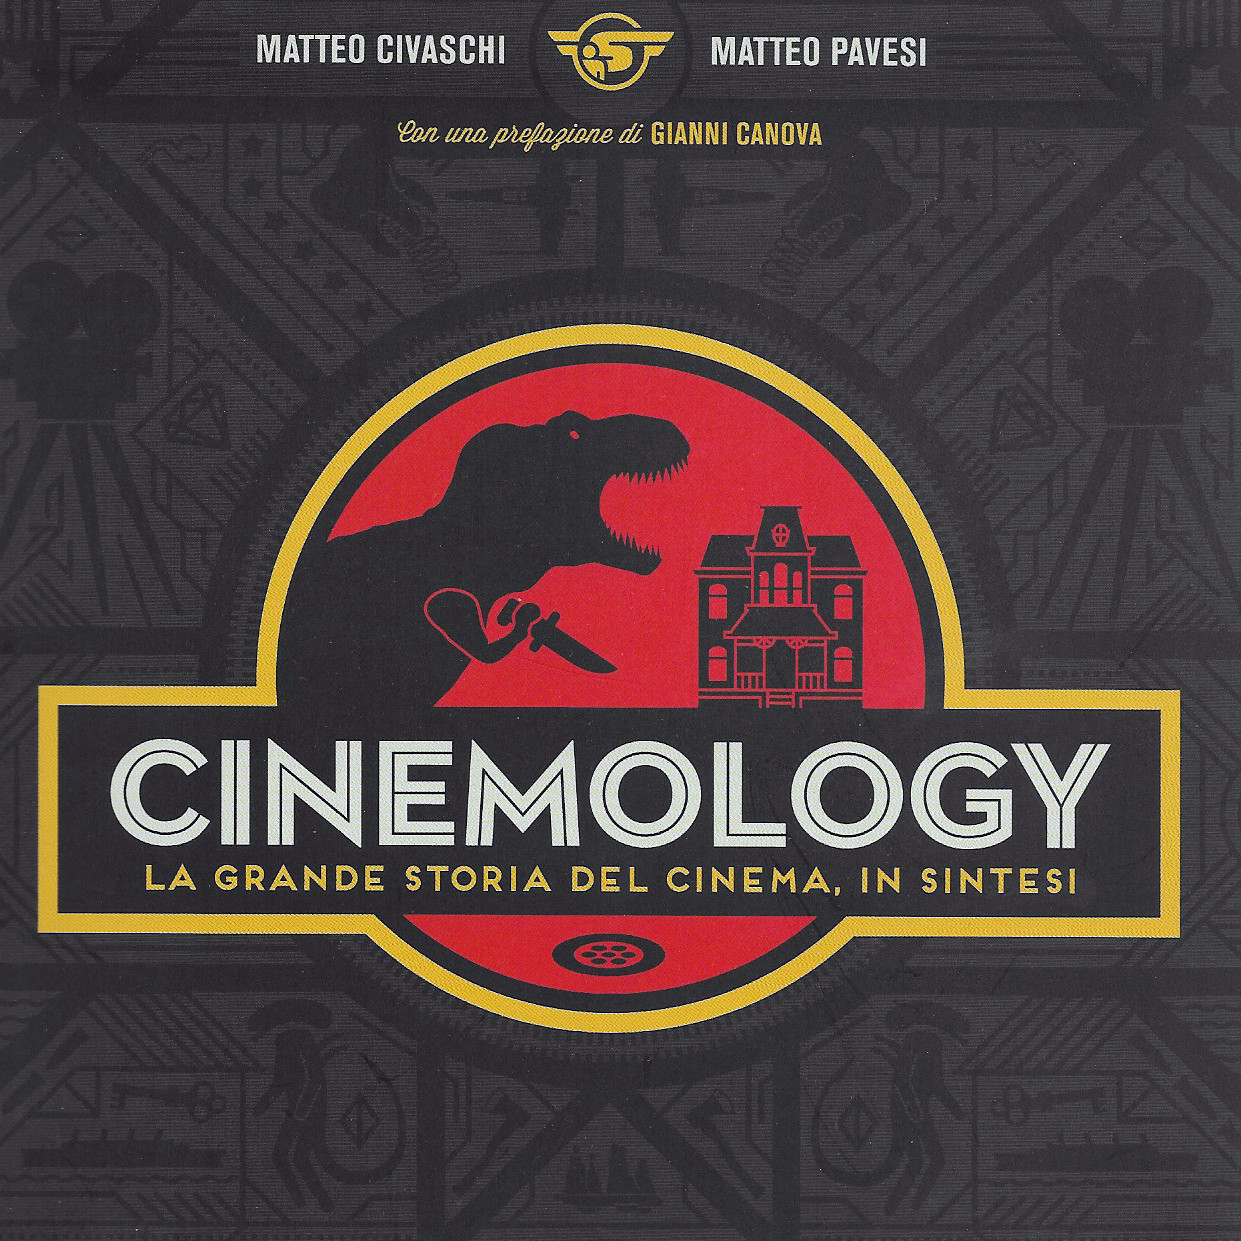 CINEMOLOGY. LA GRANDE STORIA DEL CINEMA, IN SINTESI